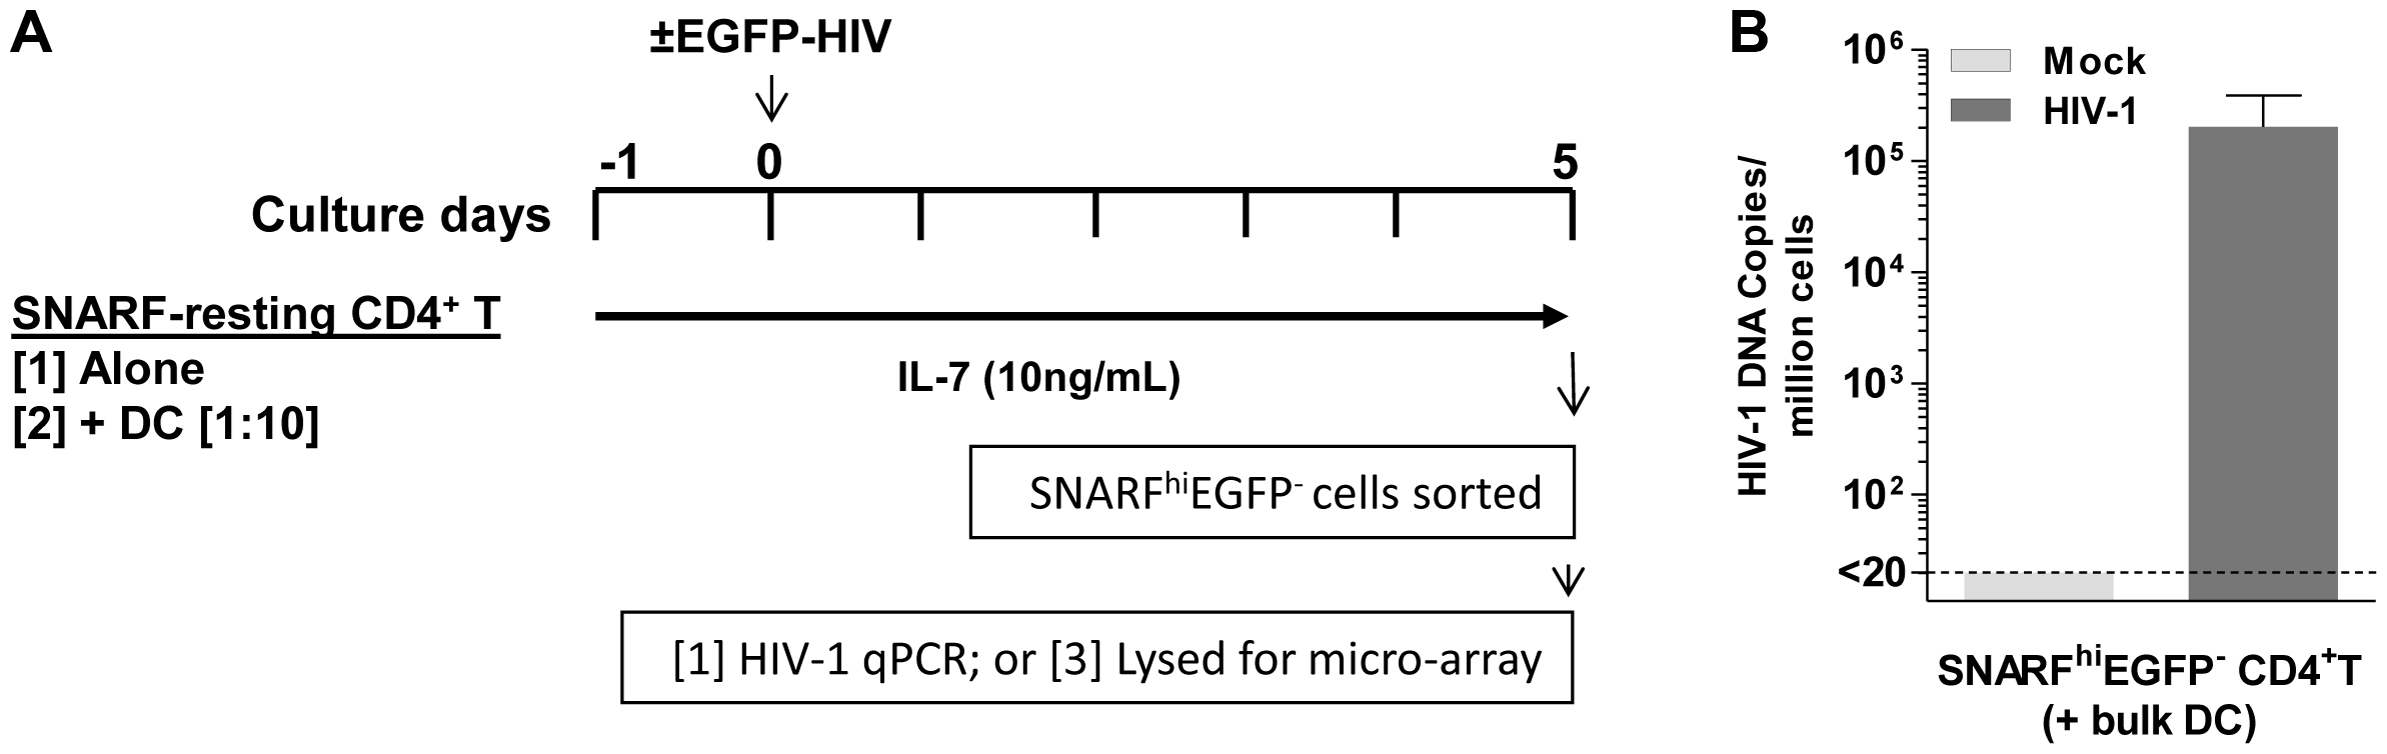 Acquisition of latently infected cells for microarray analysis.